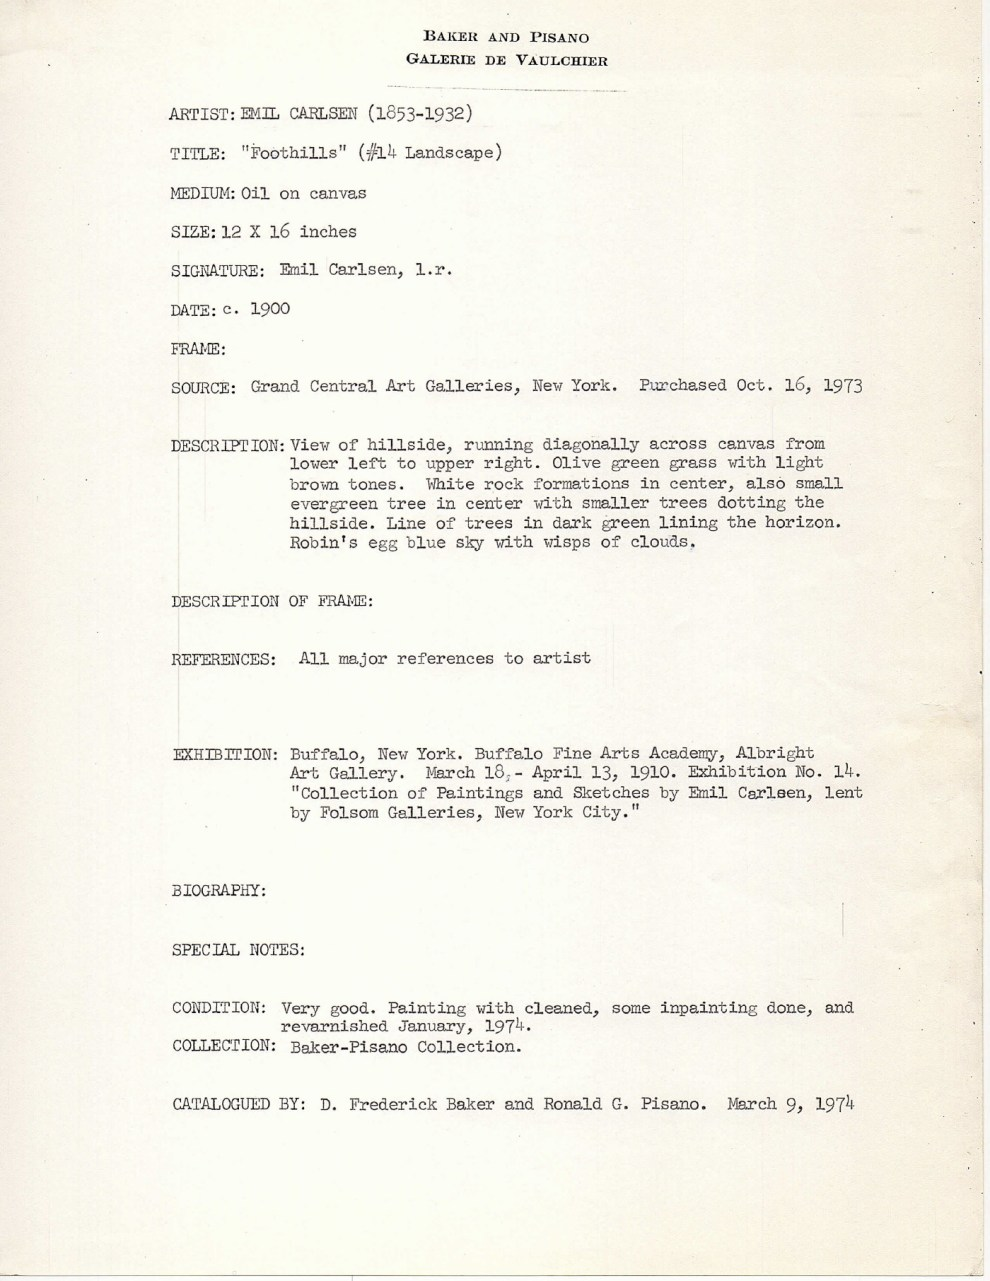 """Baker-Pisano [1949-2000] collection notes on Emil Carlsen Works"" by D. Frederick Baker, March 9, 1974"